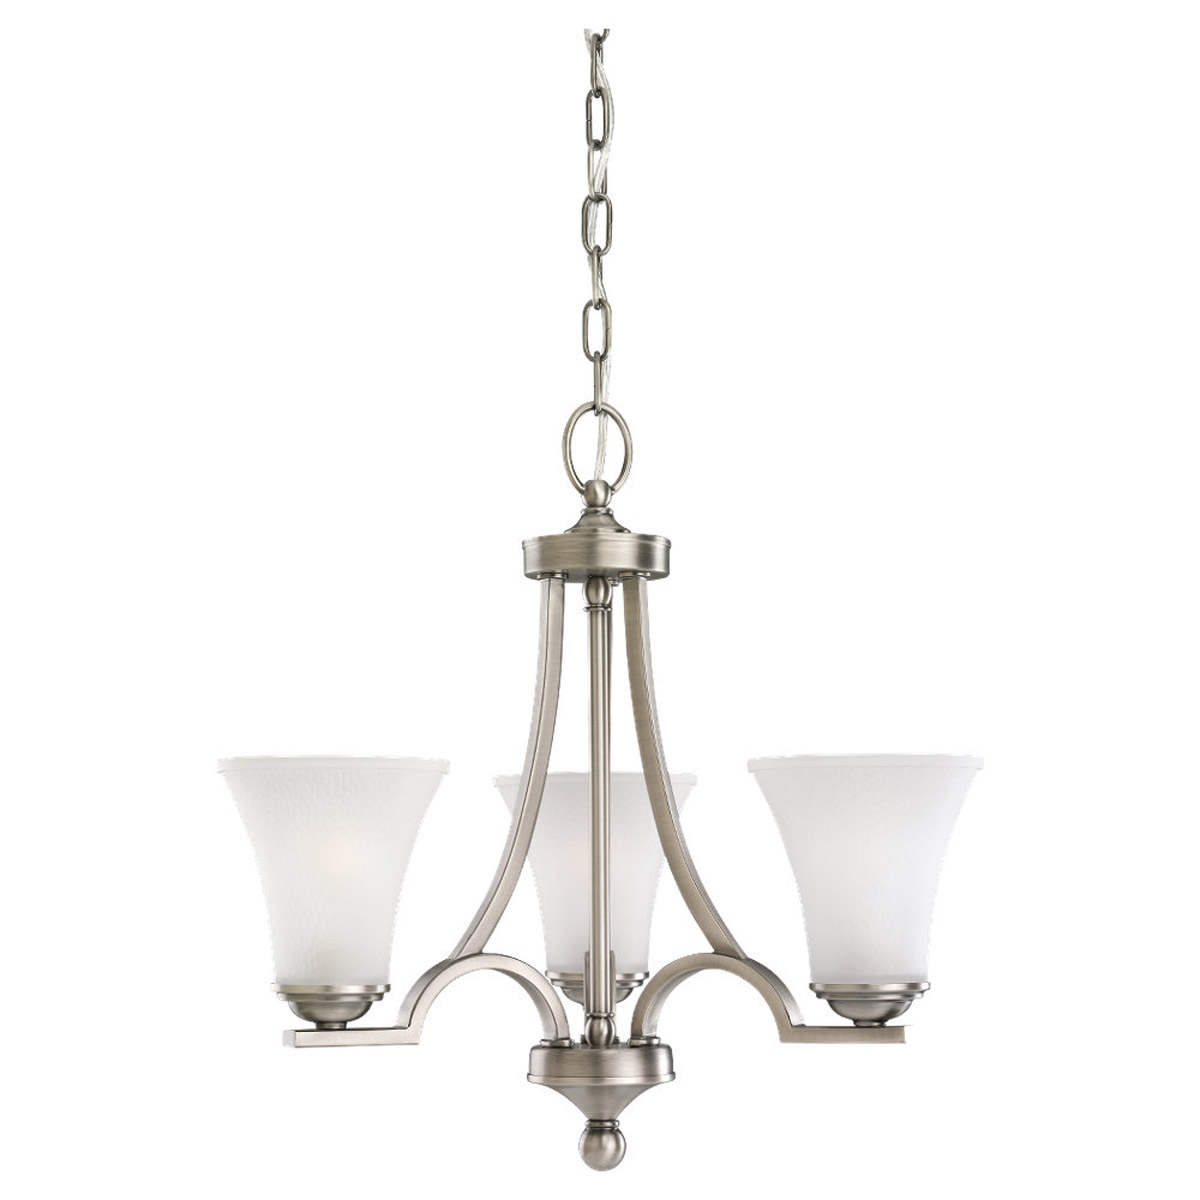 Sea Gull 31375-965 Somerton 3 Light 20 inch Antique Brushed Nickel Chandelier Ceiling Light in Satin Etched Glass, Standard photo